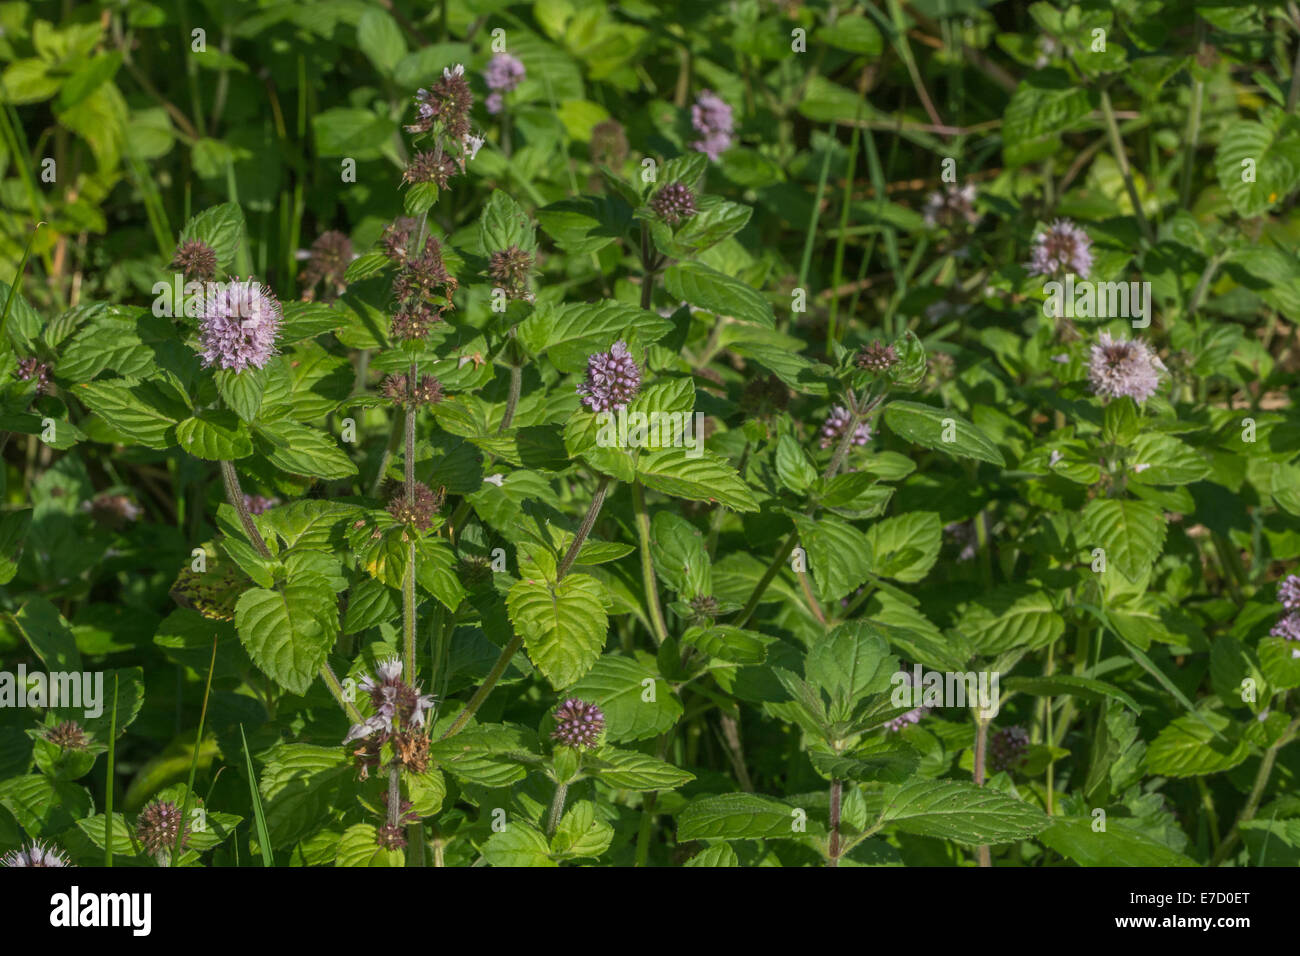 Water Mint / Mentha aquatica growing in marshy meadow ground. Foraging and dining on the wild concept. Riverside Stock Photo